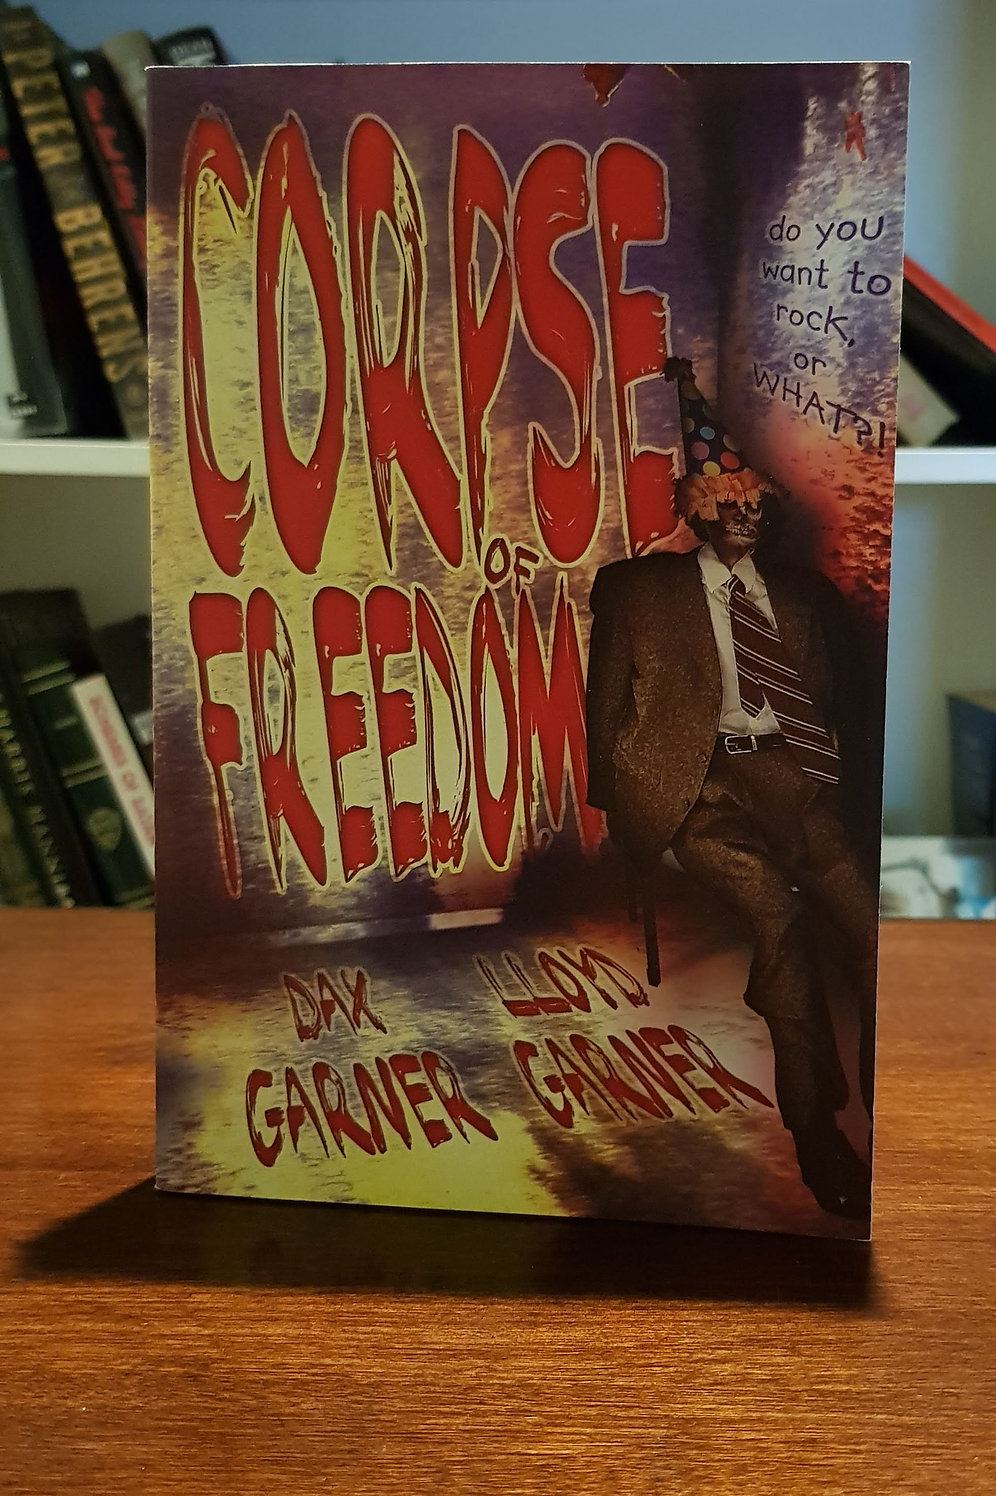 Corpse of Freedom by Dax and Lloyd Garner